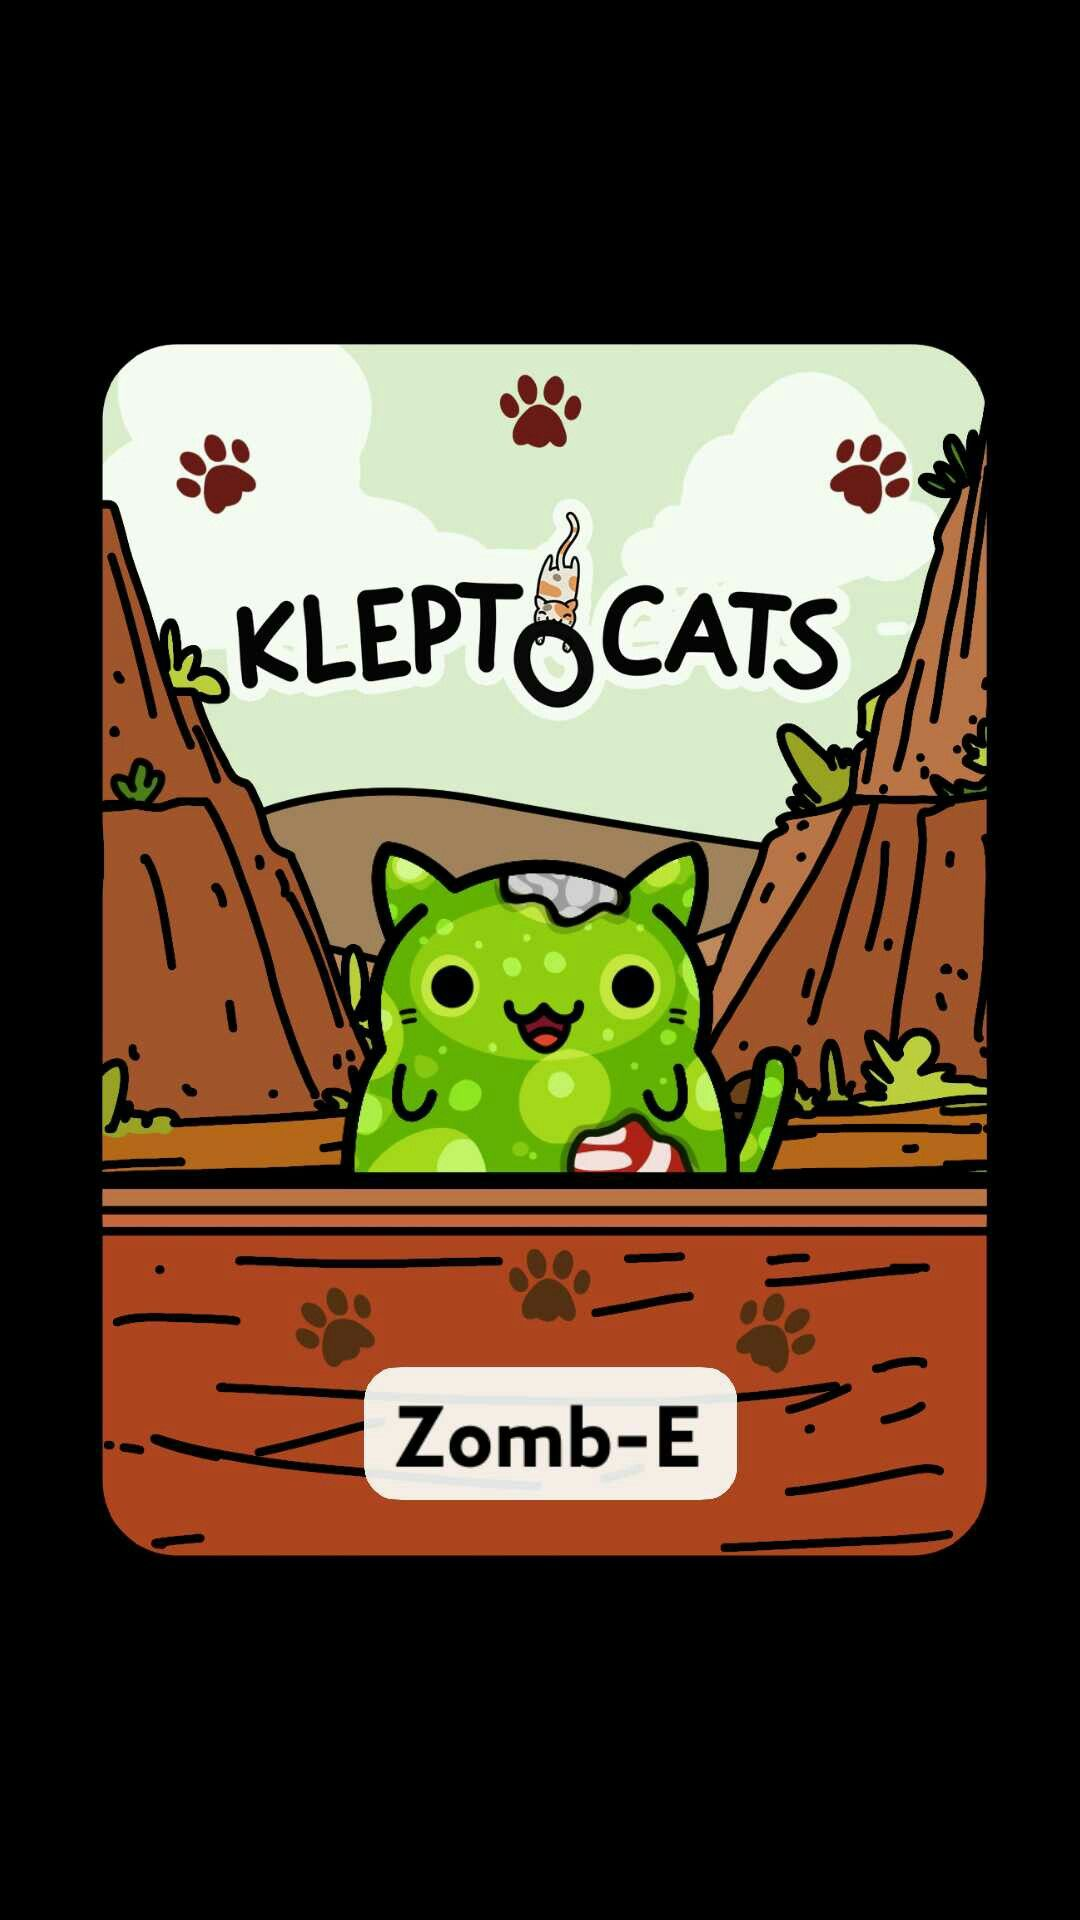 Pin by Liz Genschow on cats Klepto cat, Kitty games